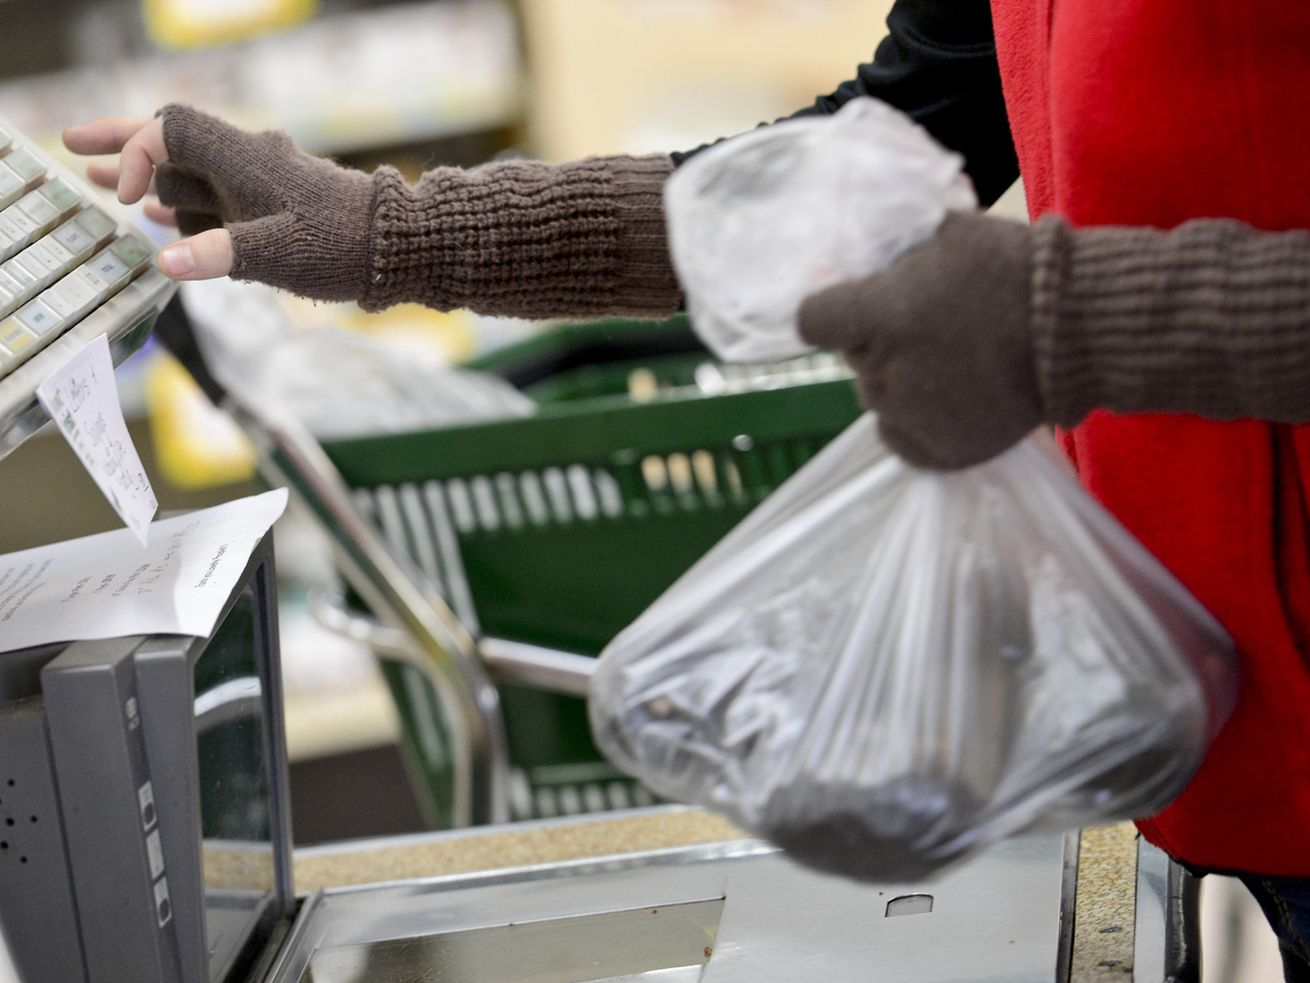 A supermarket cashier rings up groceries for a customer on December 6, 2013, in Boulder, Colorado.